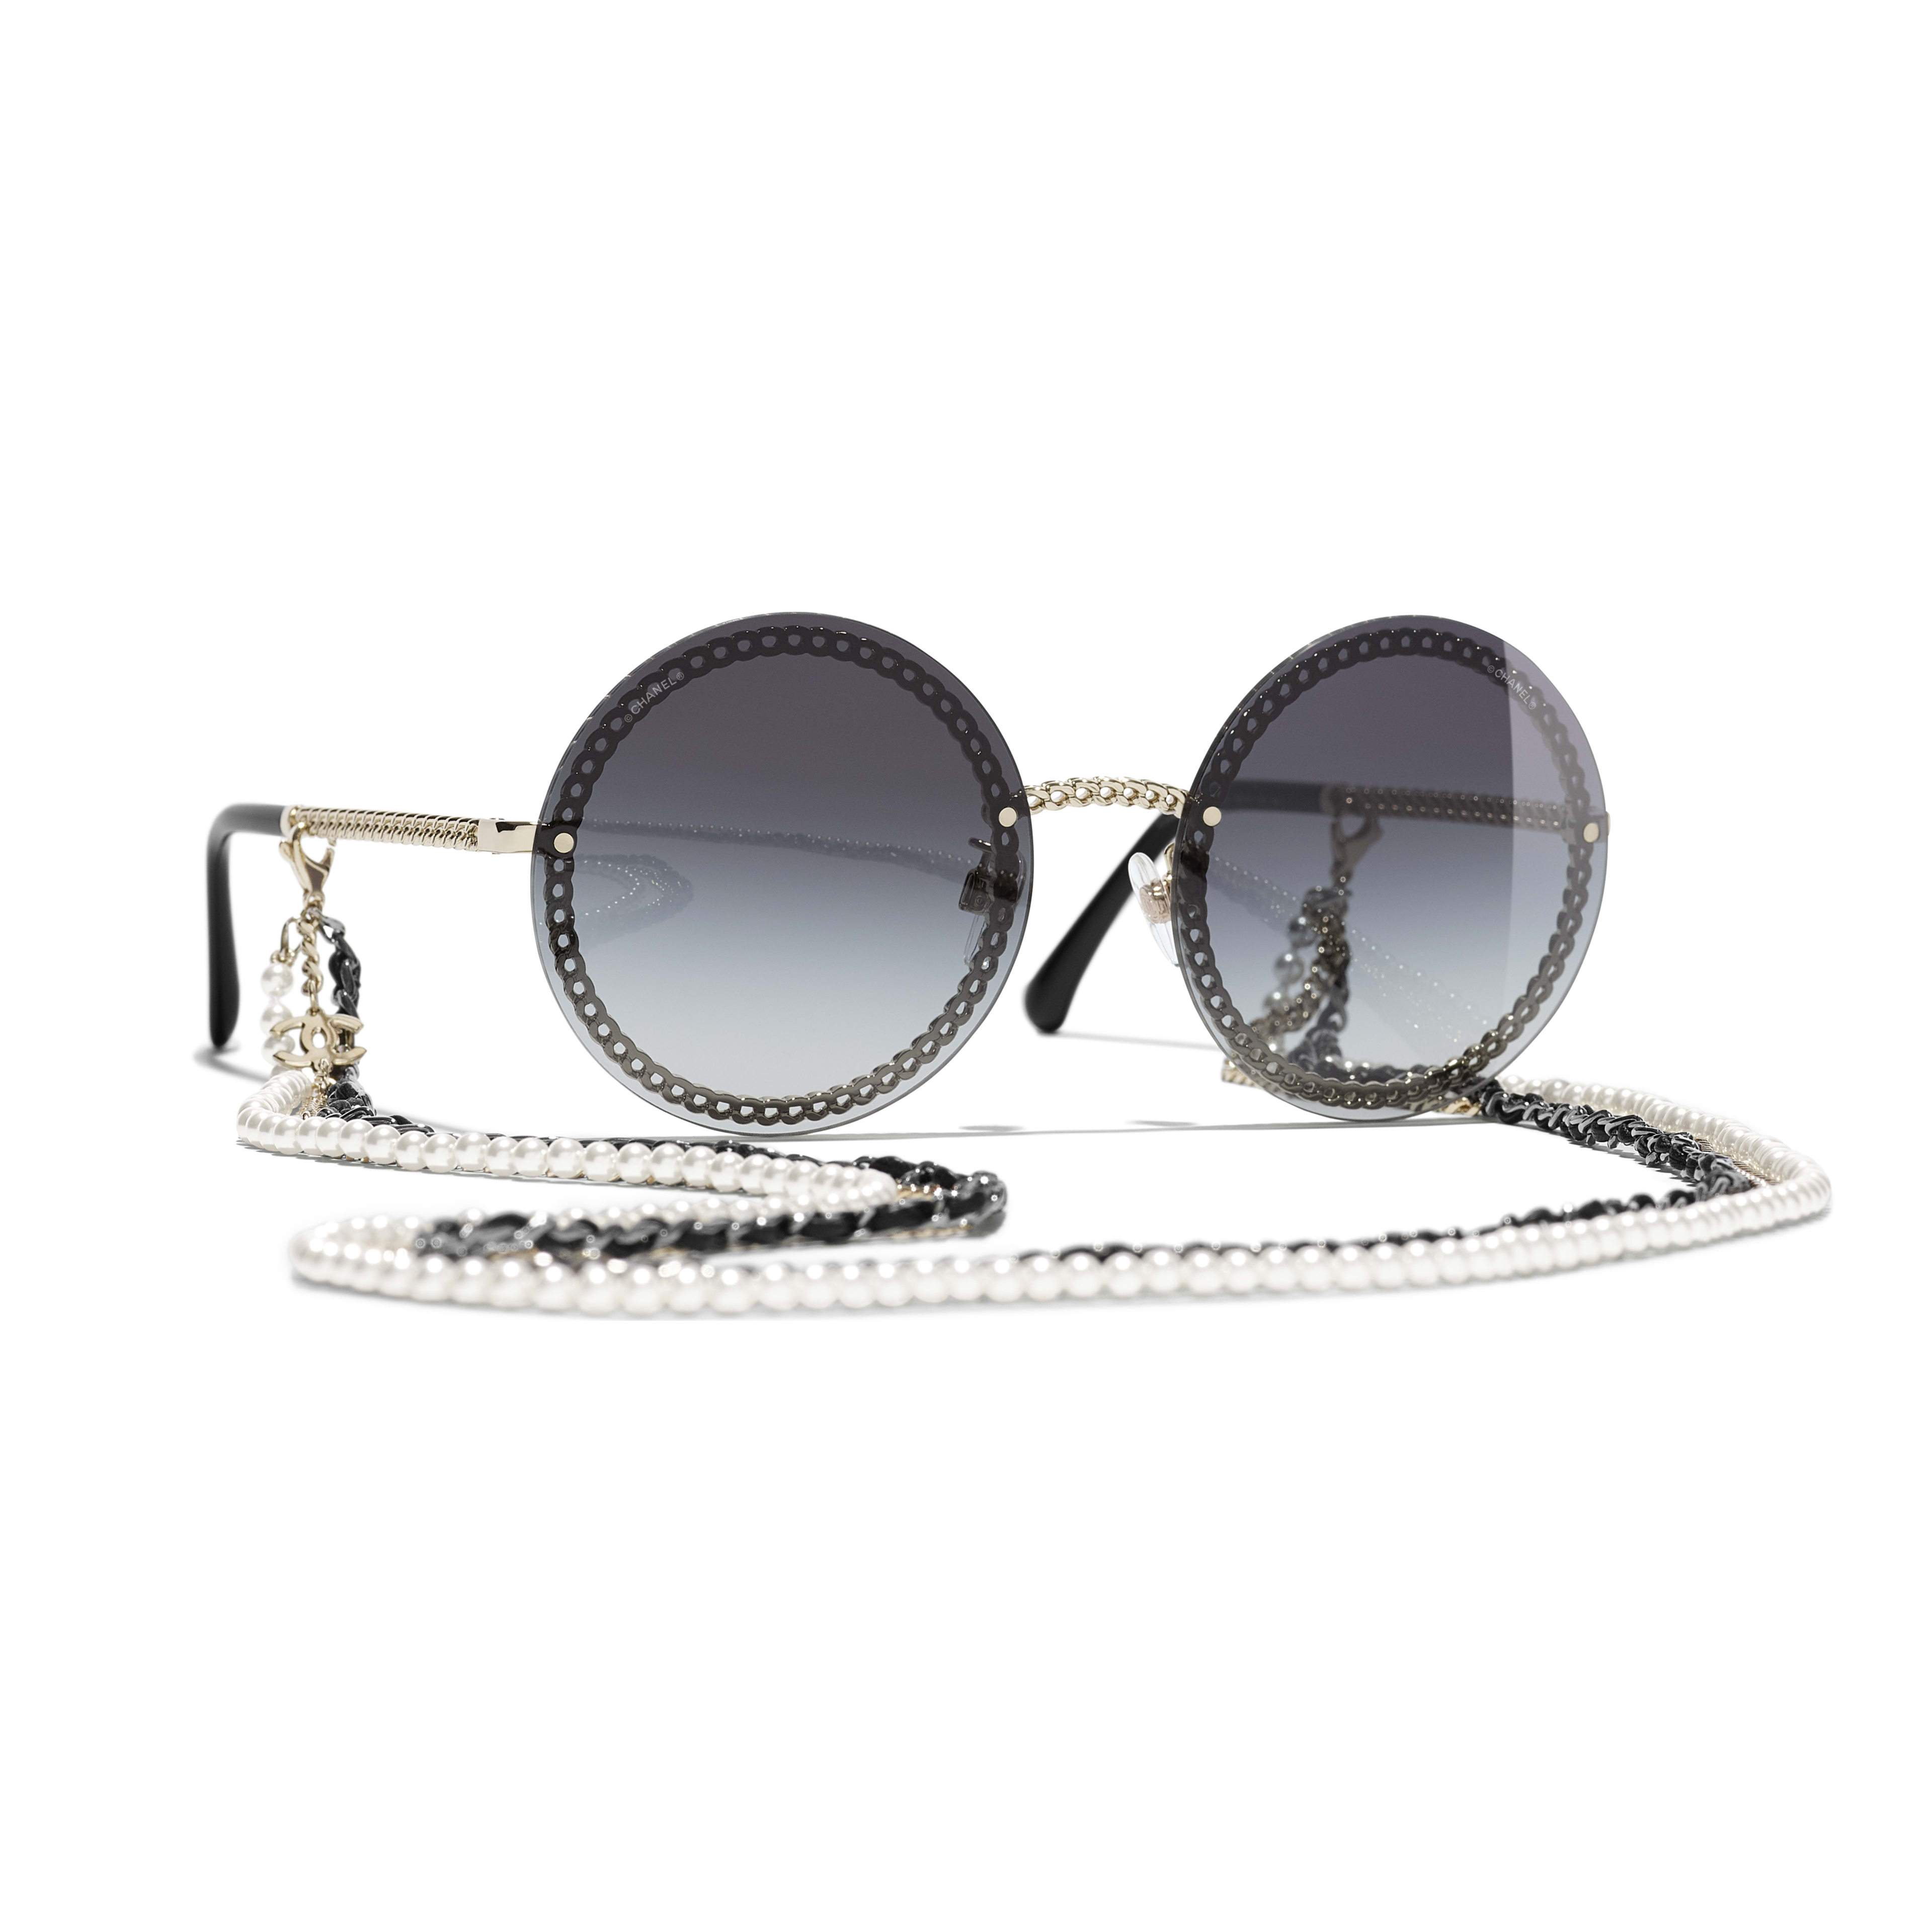 Round Sunglasses - Gold - Metal, Calfskin & Imitation Pearls - CHANEL - Default view - see standard sized version